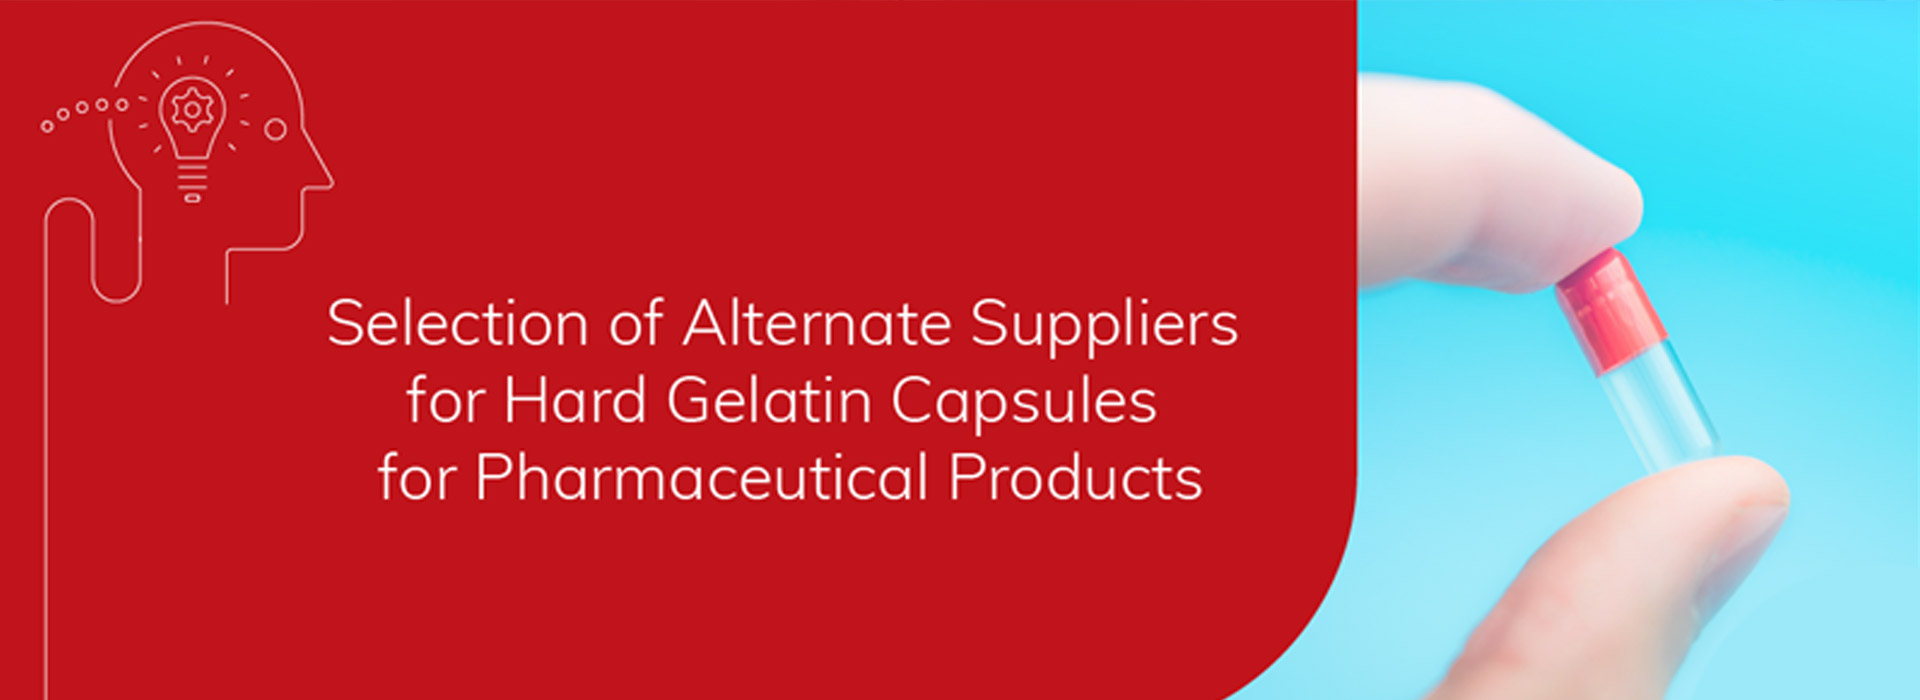 Assisting the pharma industry as a vendor for hard empty gelatin capsules